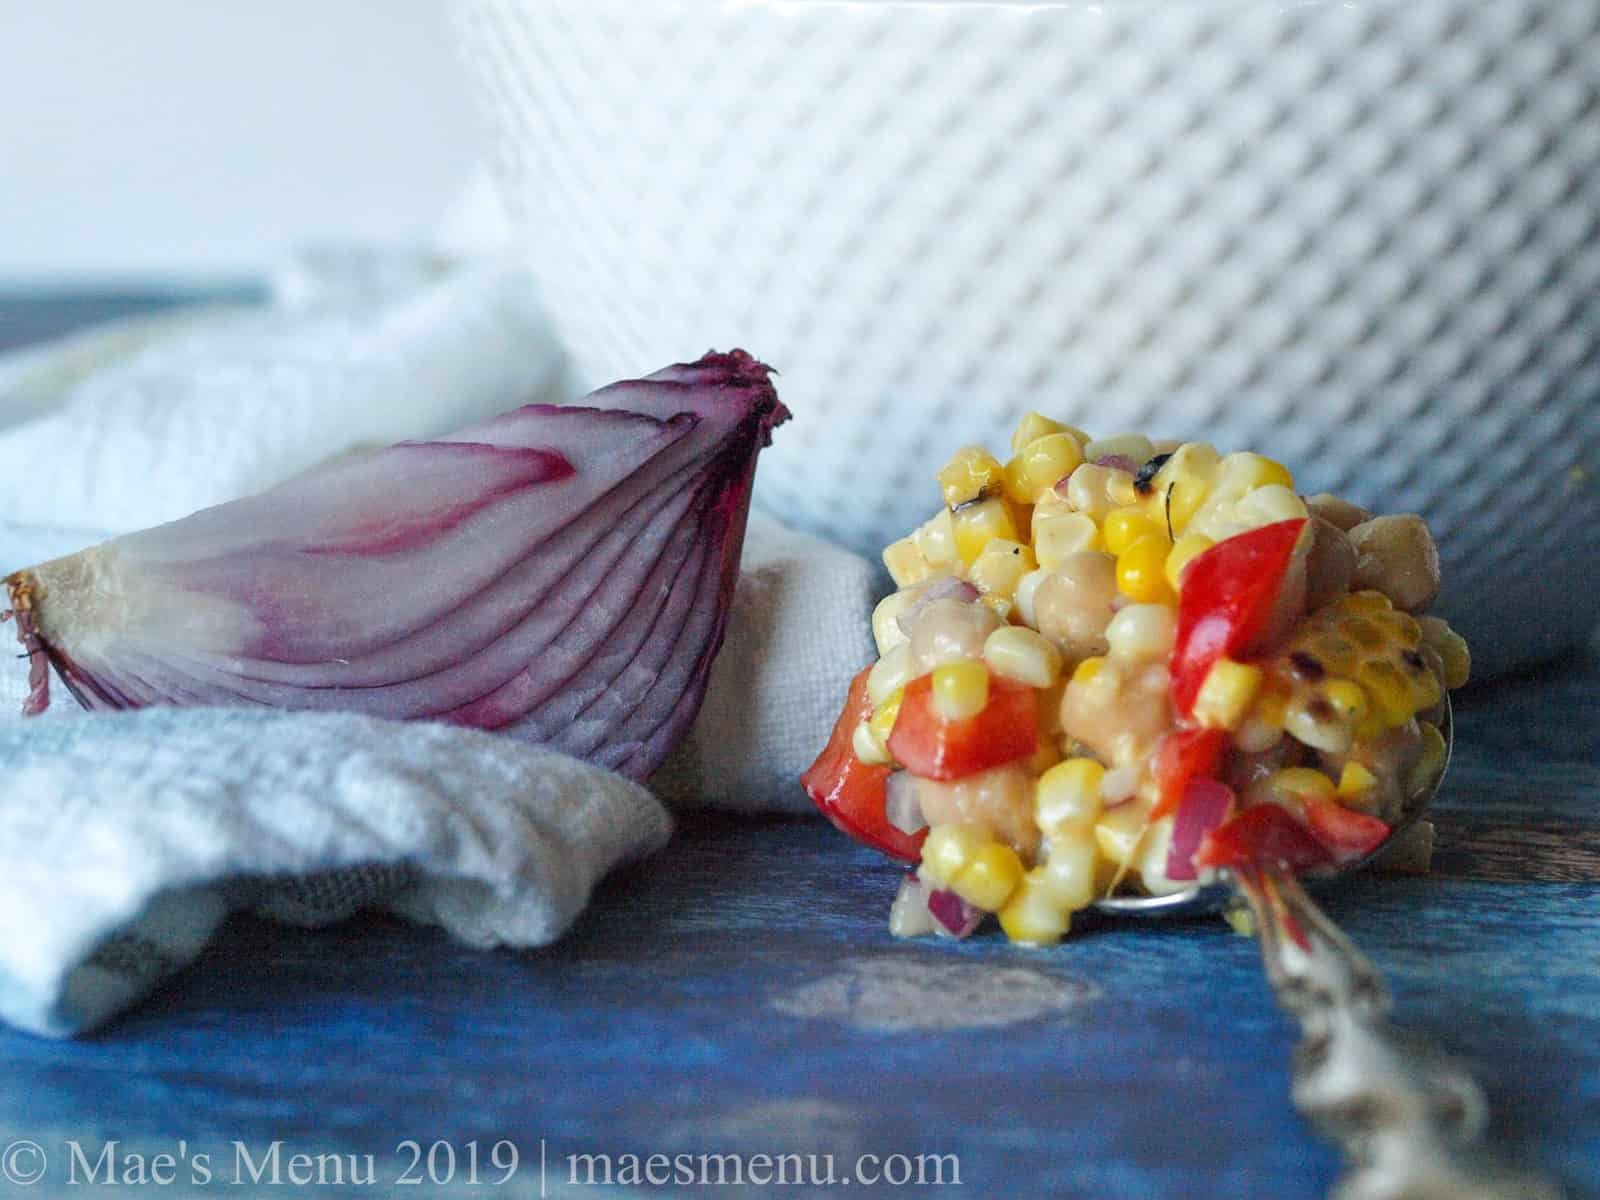 A large spoon full of chickpea & grilled corn salad next to a red onion.